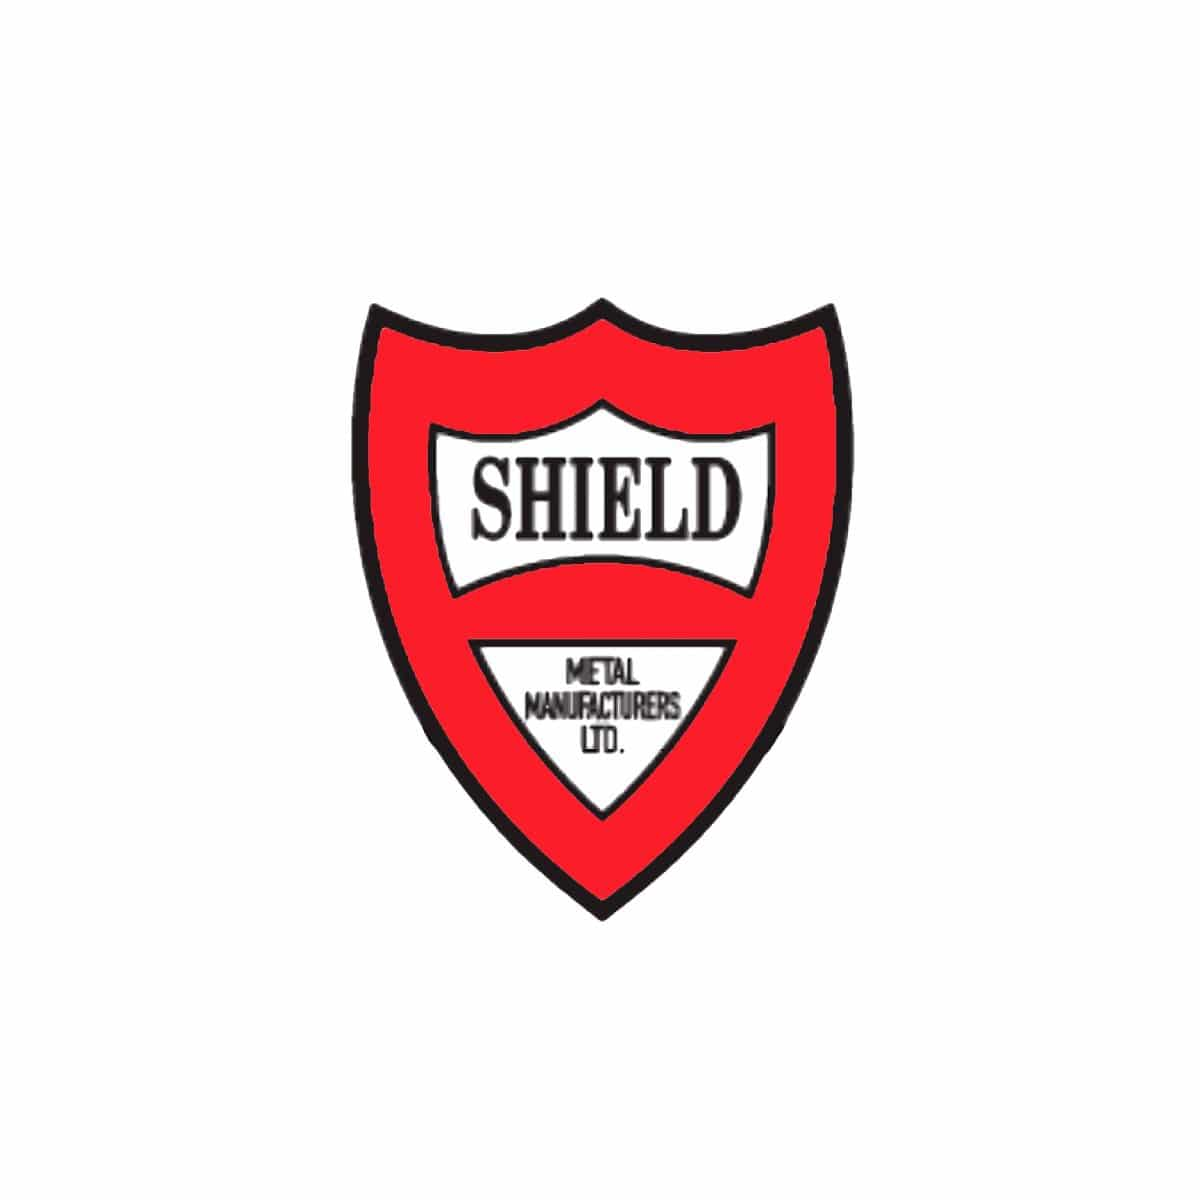 Shield Metal Manufacturing